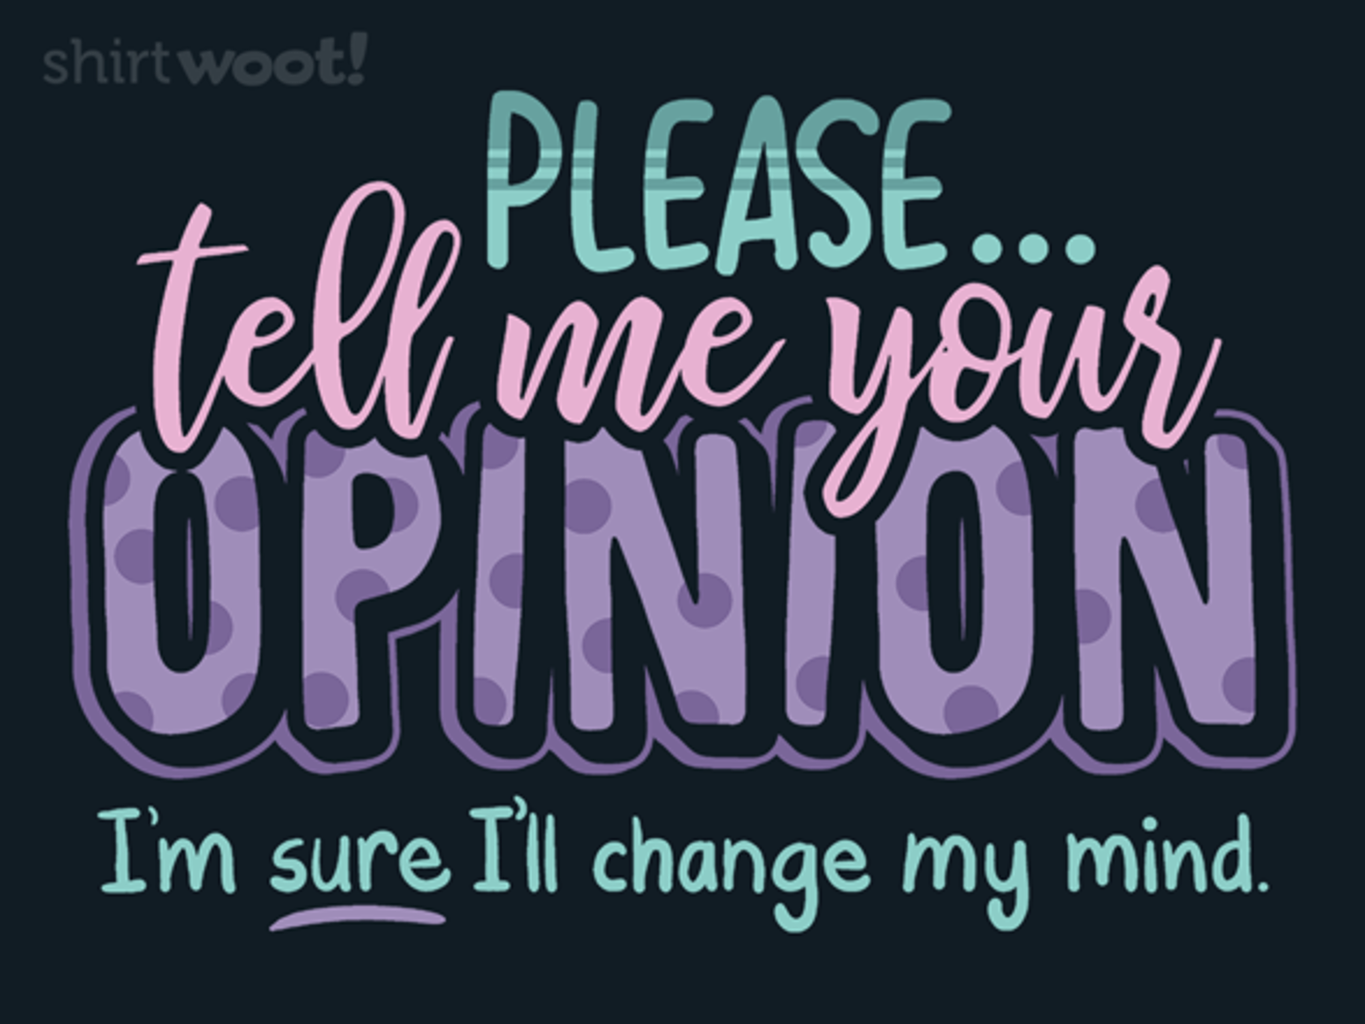 Woot!: Opinionated